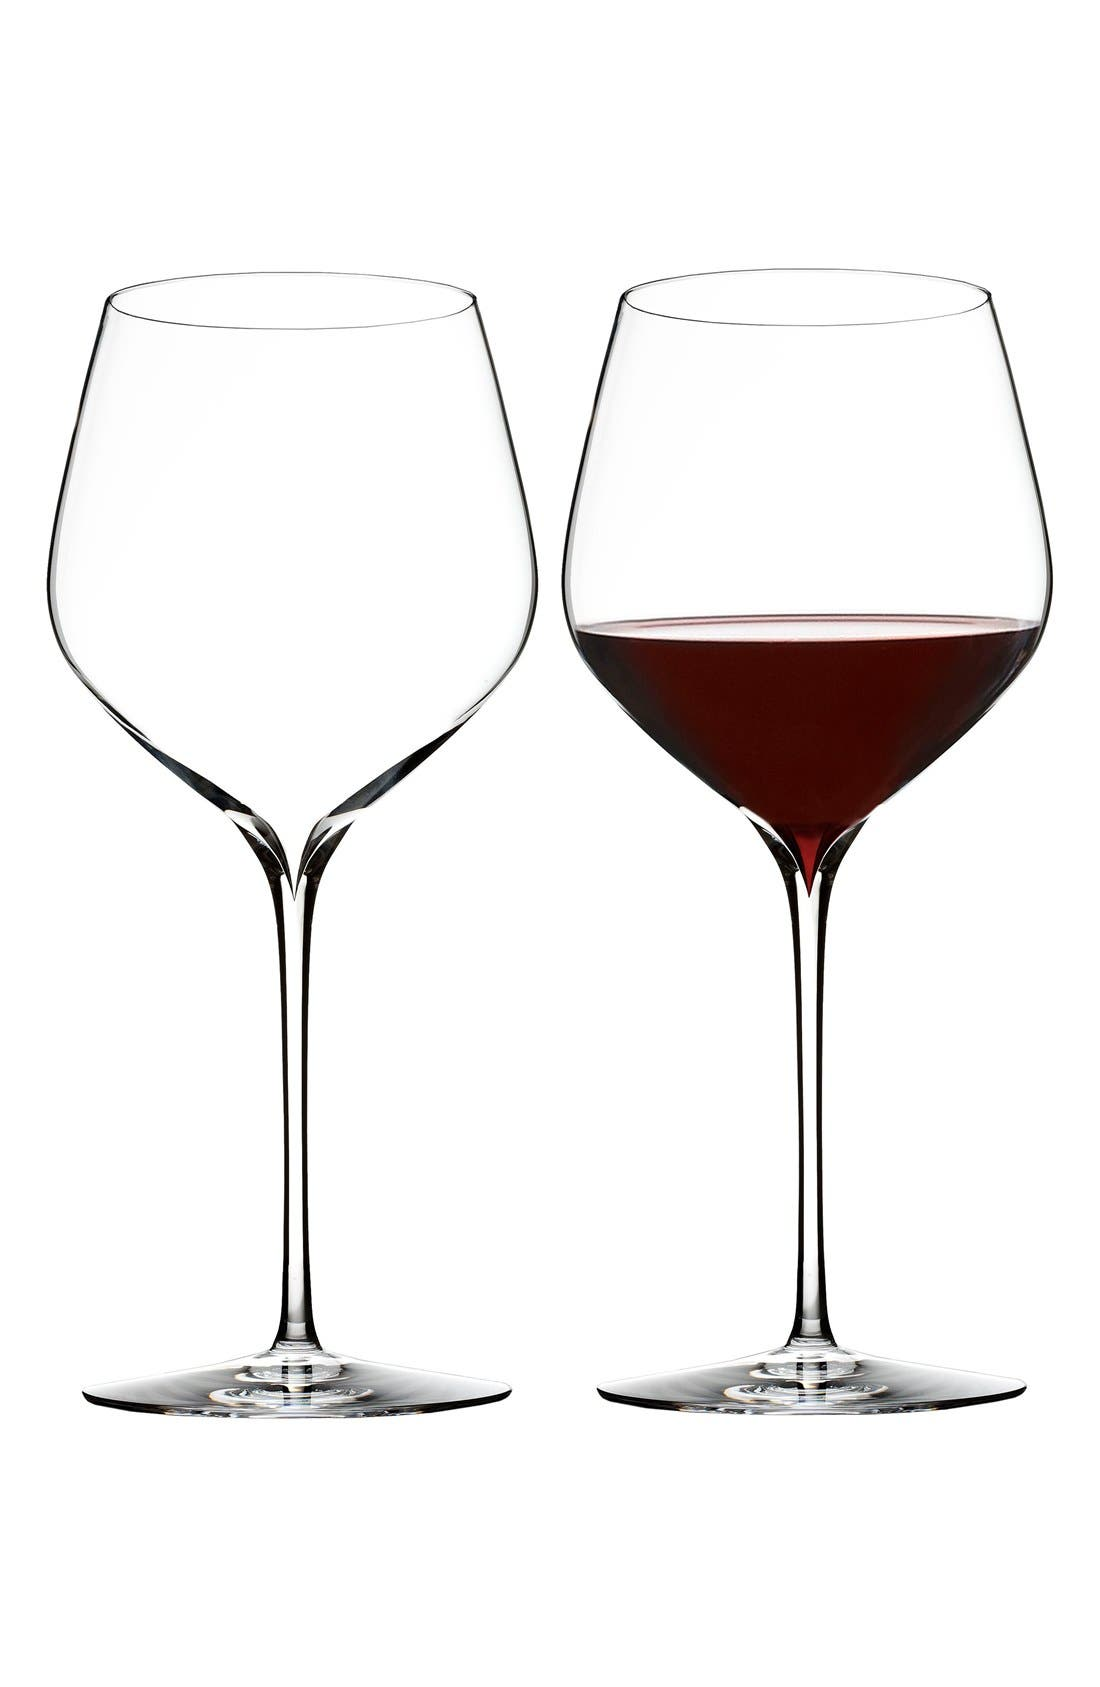 'Elegance' Fine Crystal Cabernet Sauvignon Glasses,                             Alternate thumbnail 4, color,                             100